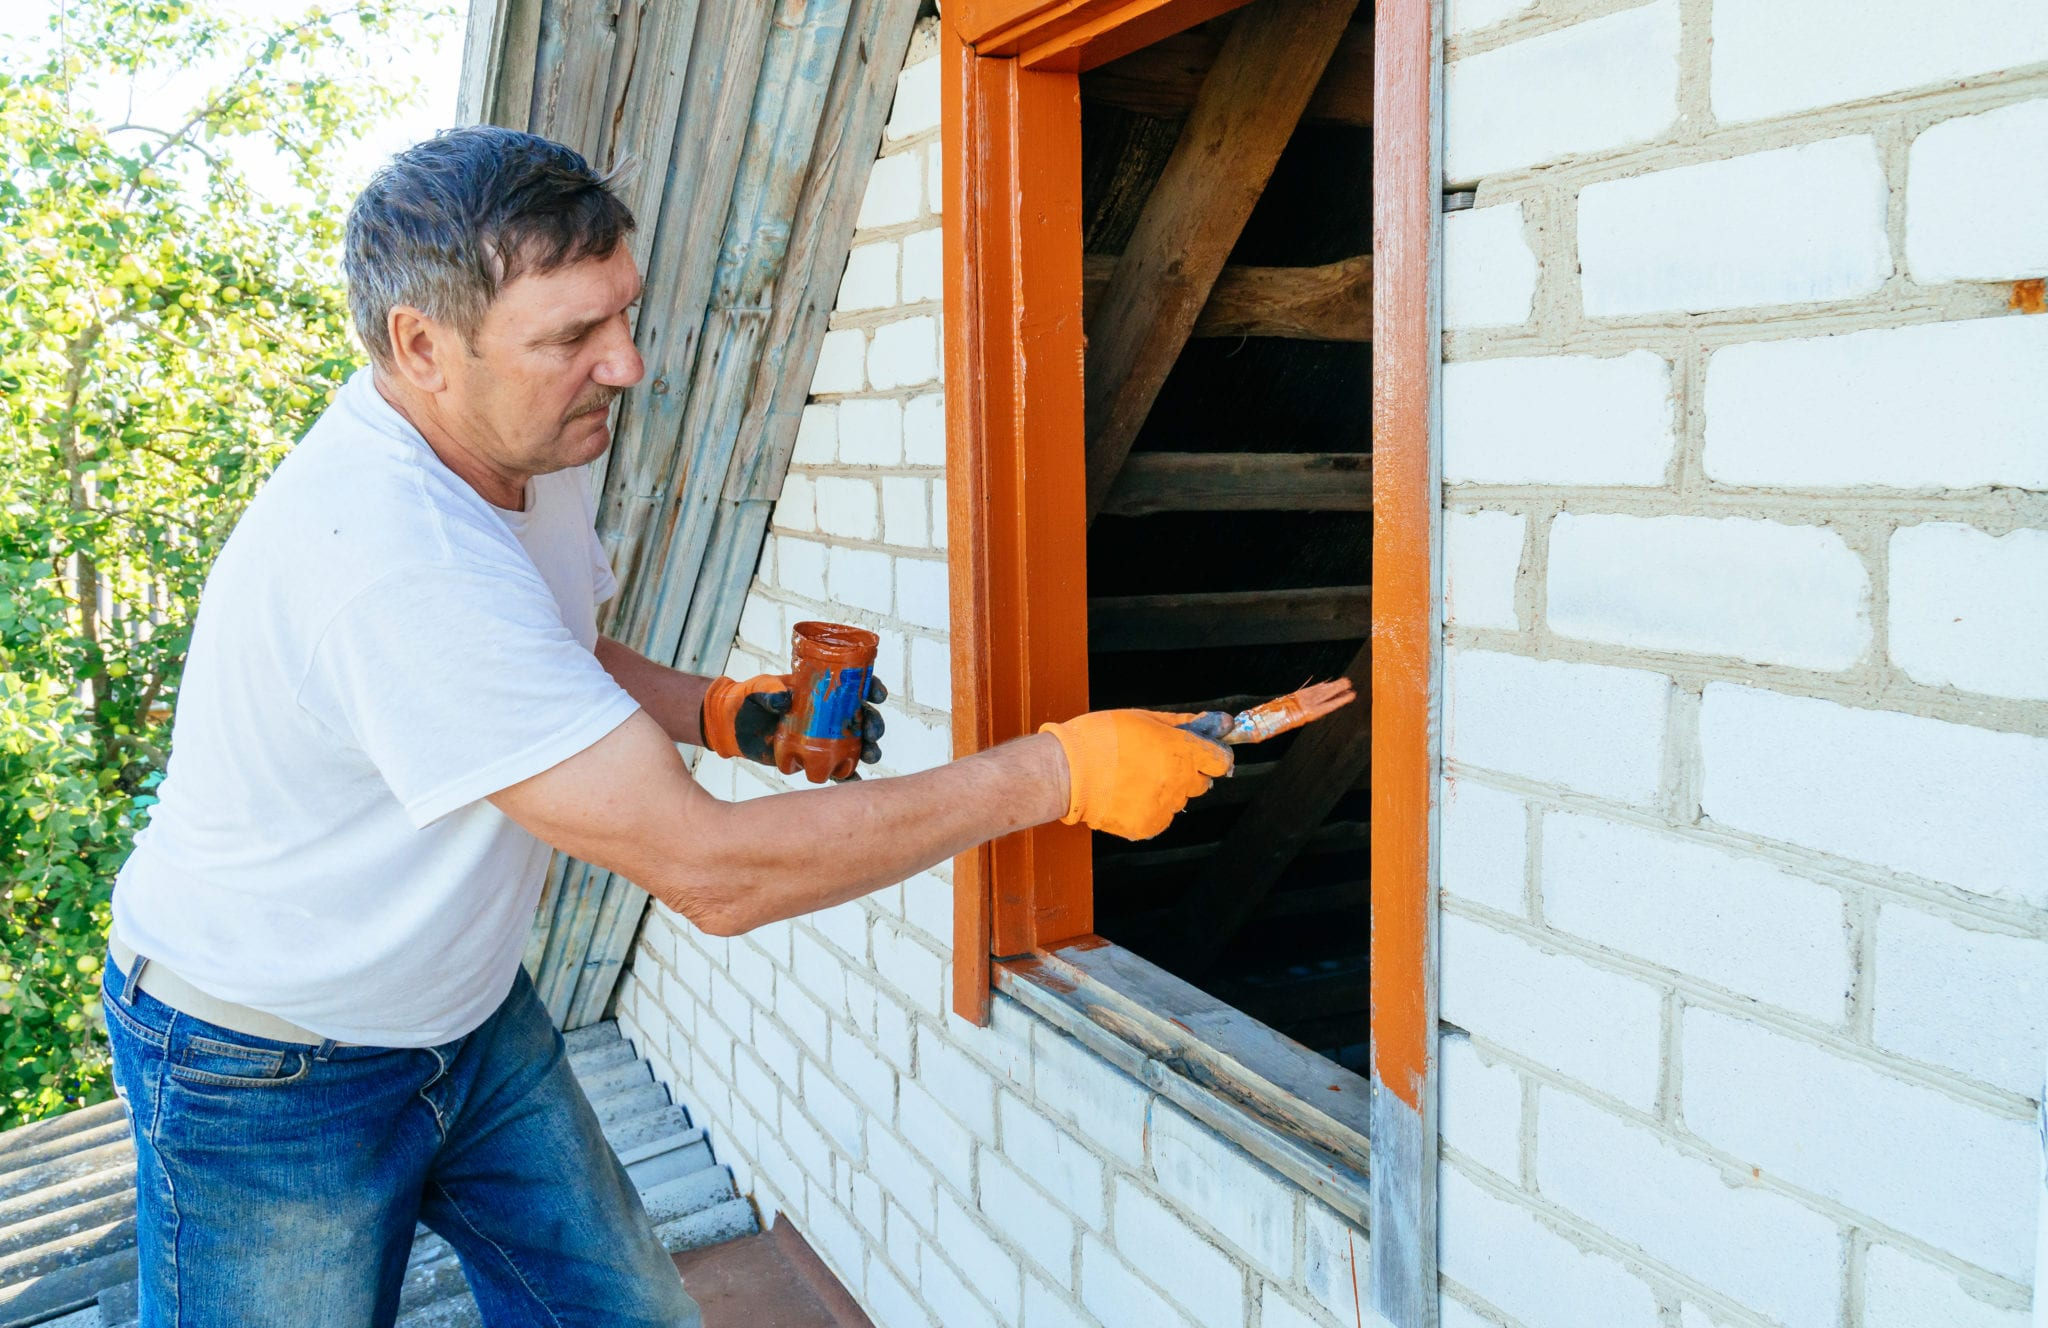 Senior man painting outside of painting wooden window exterior